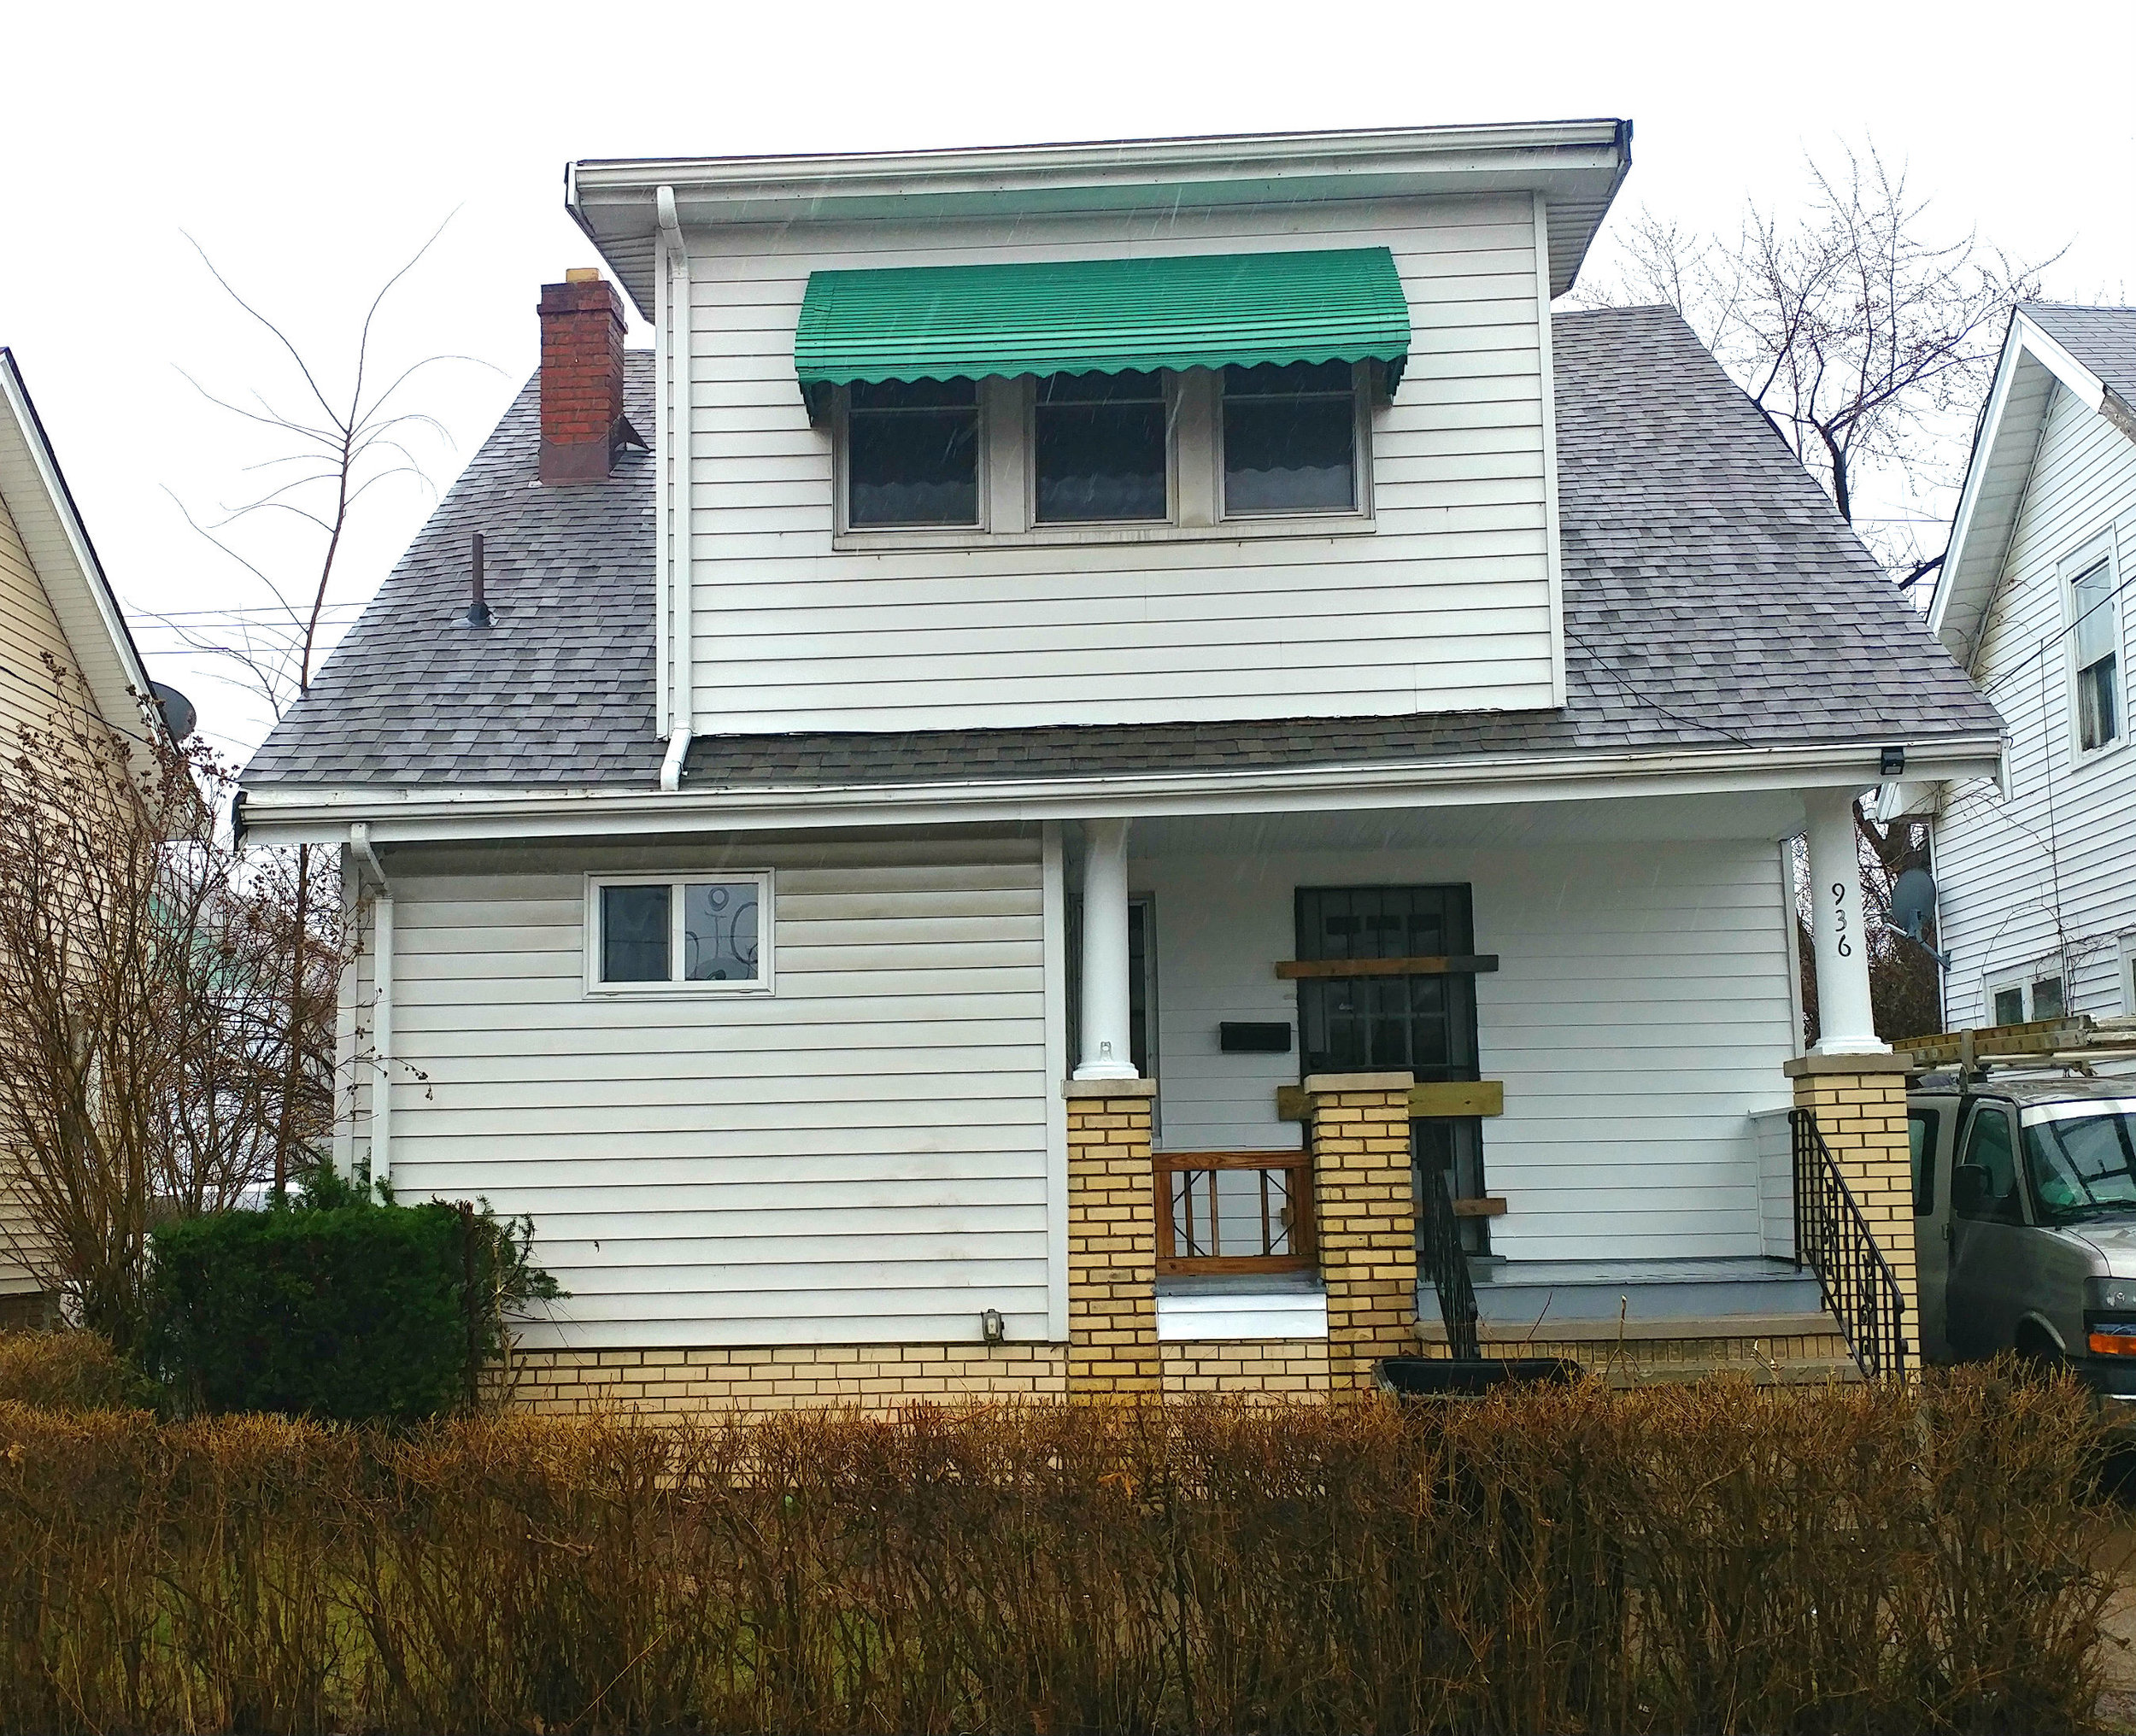 936 London Rd., Cleveland | 3 Bed 2 Bath | 1,471 Sq. Ft. | $12,000